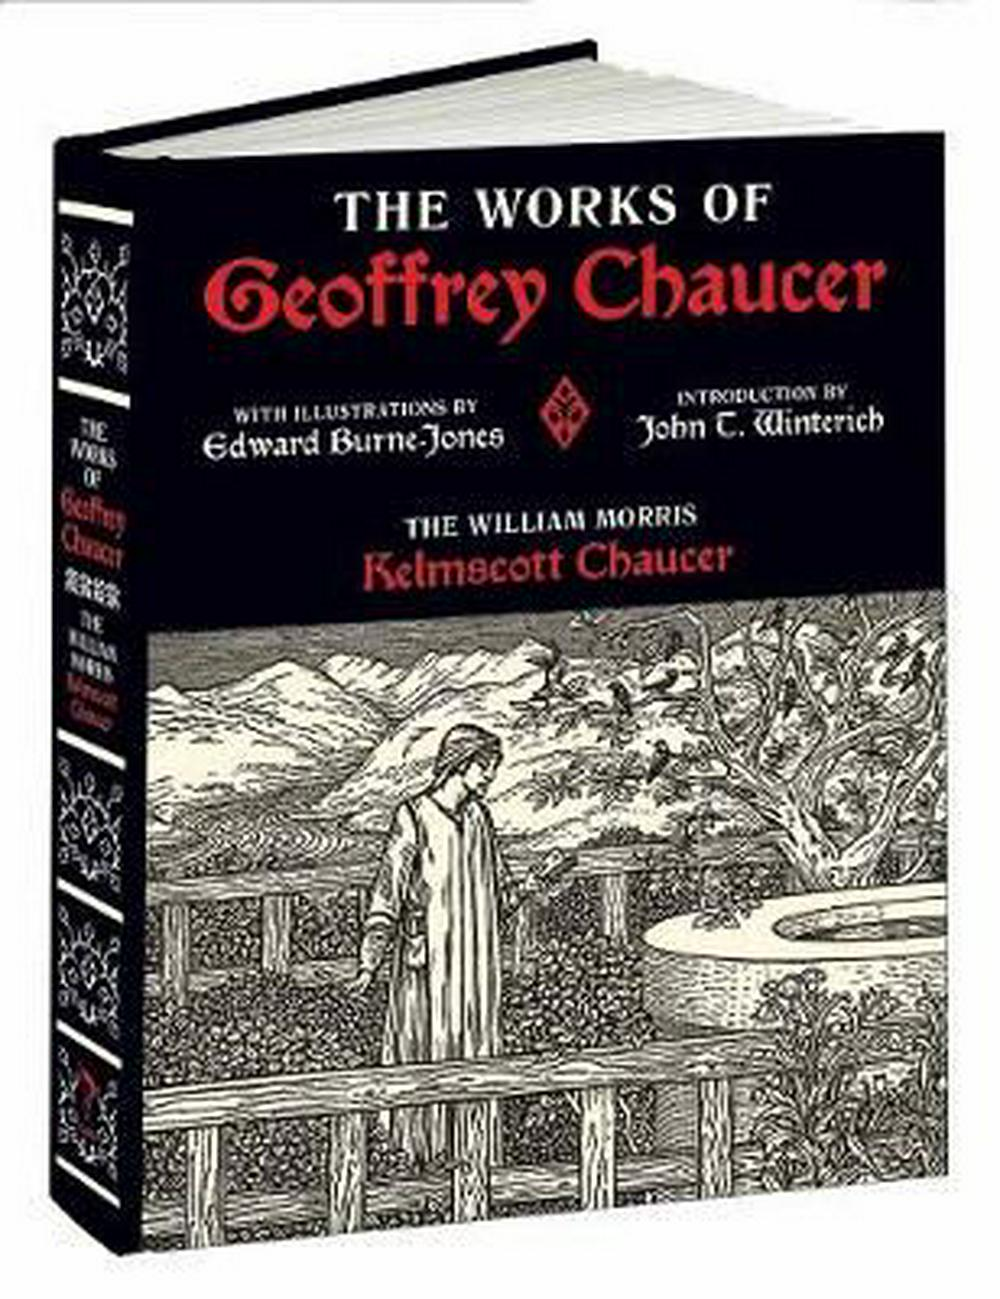 Works of Geoffrey ChaucerThe William Morris Kelmscott Chaucer by Geoffrey Chaucer, ISBN: 9781606601044